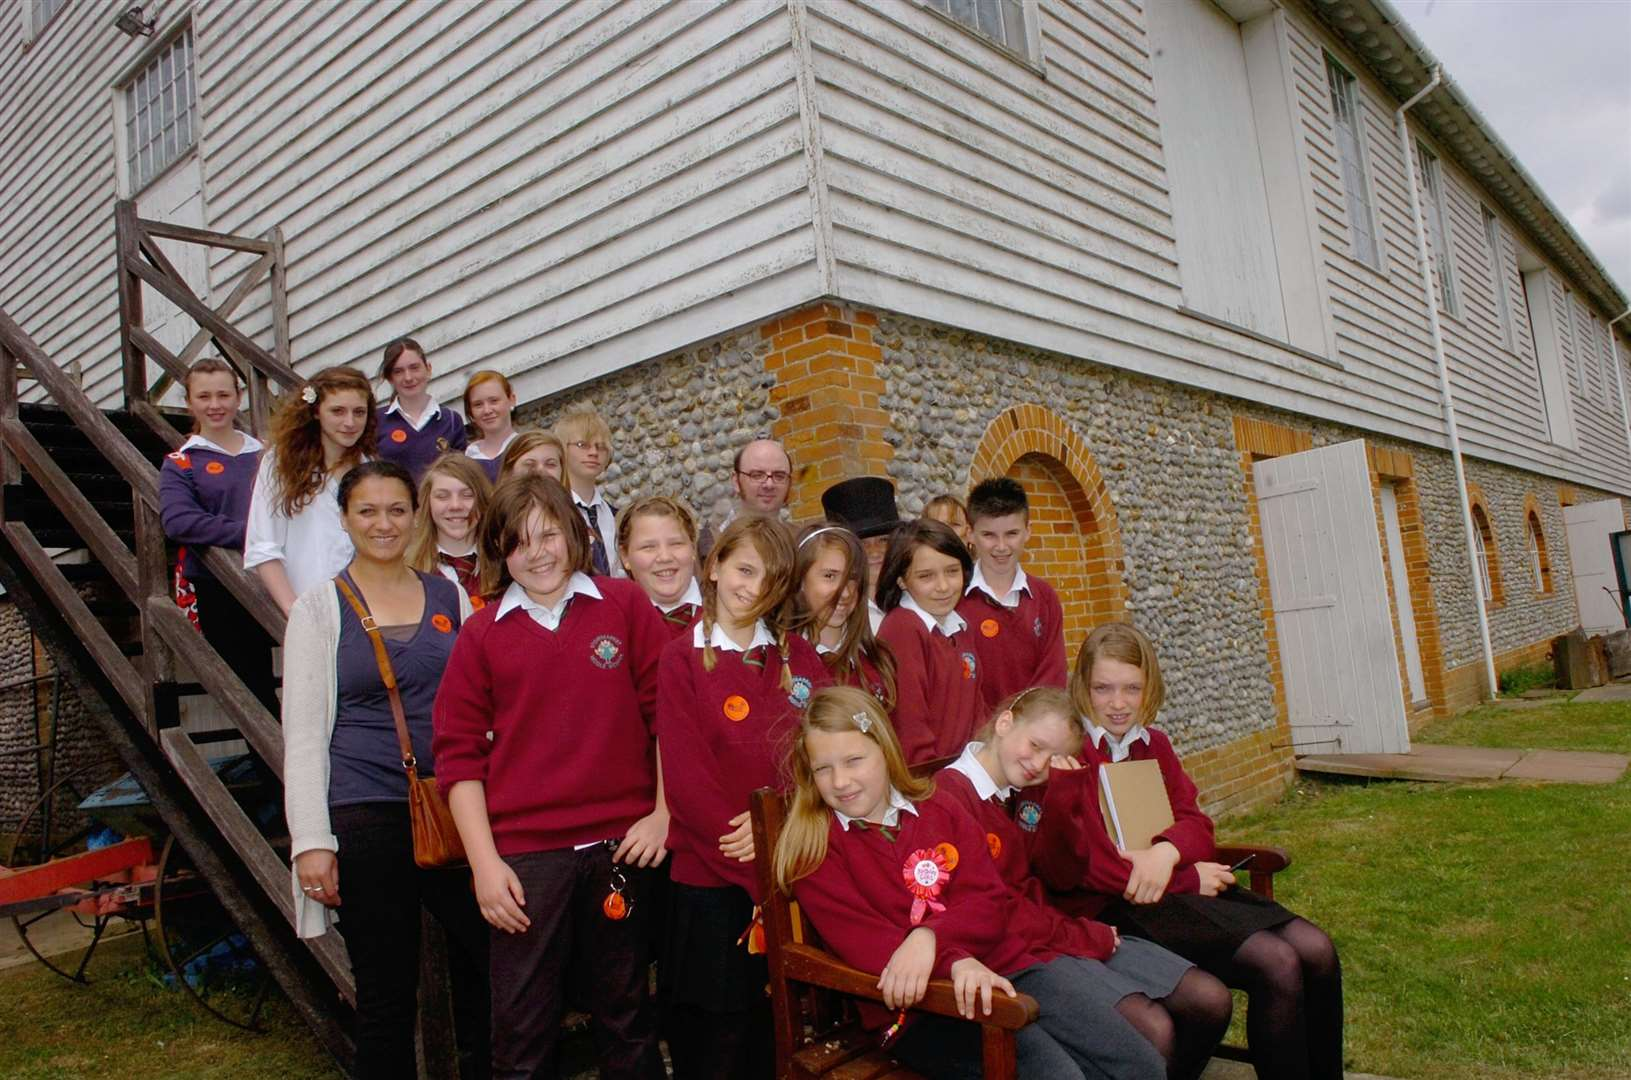 Students at the former Stowmarket Middle School